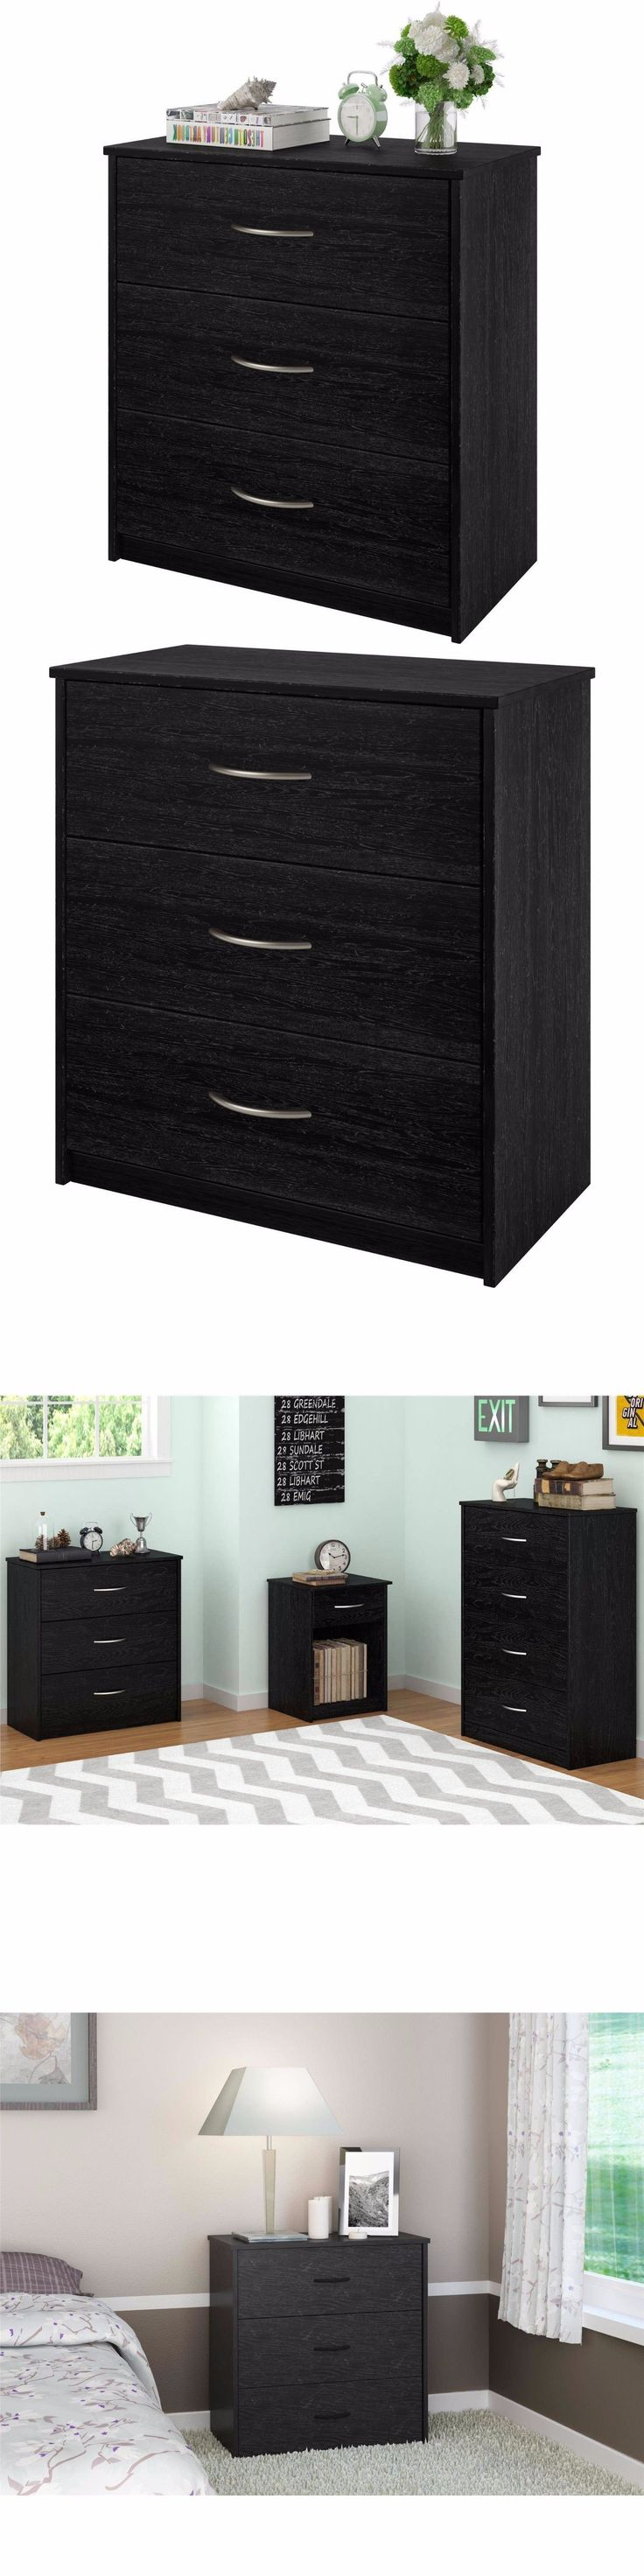 Dressers and Chests of Drawers 114397  Dressers For Cheap Lingerie Dresser  With Drawers Black Oak. Best 25  Dressers for cheap ideas on Pinterest   Cheap bedroom